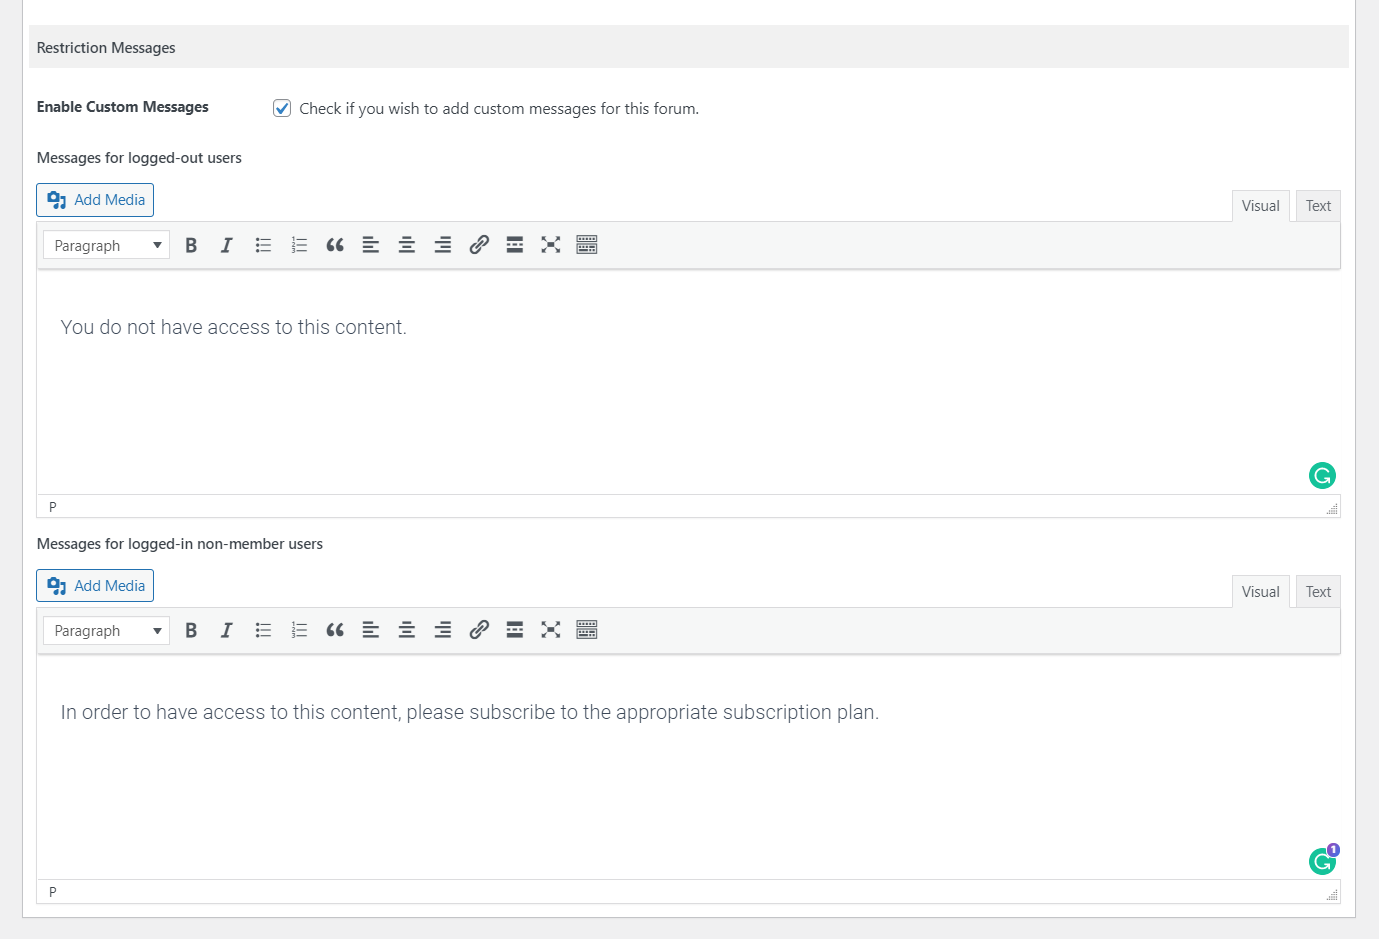 Custom restriction messages for specific forums